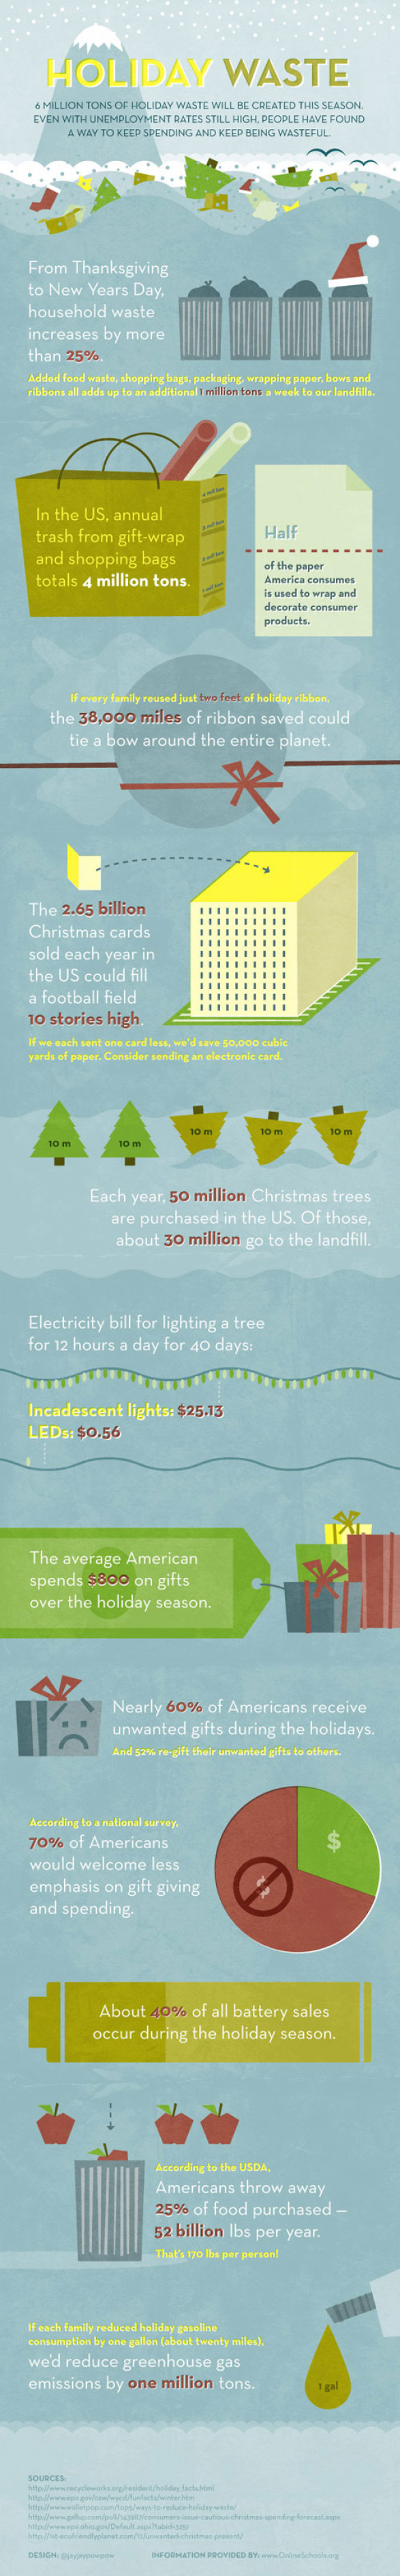 Burying ourselves in holiday waste. (Infographic)